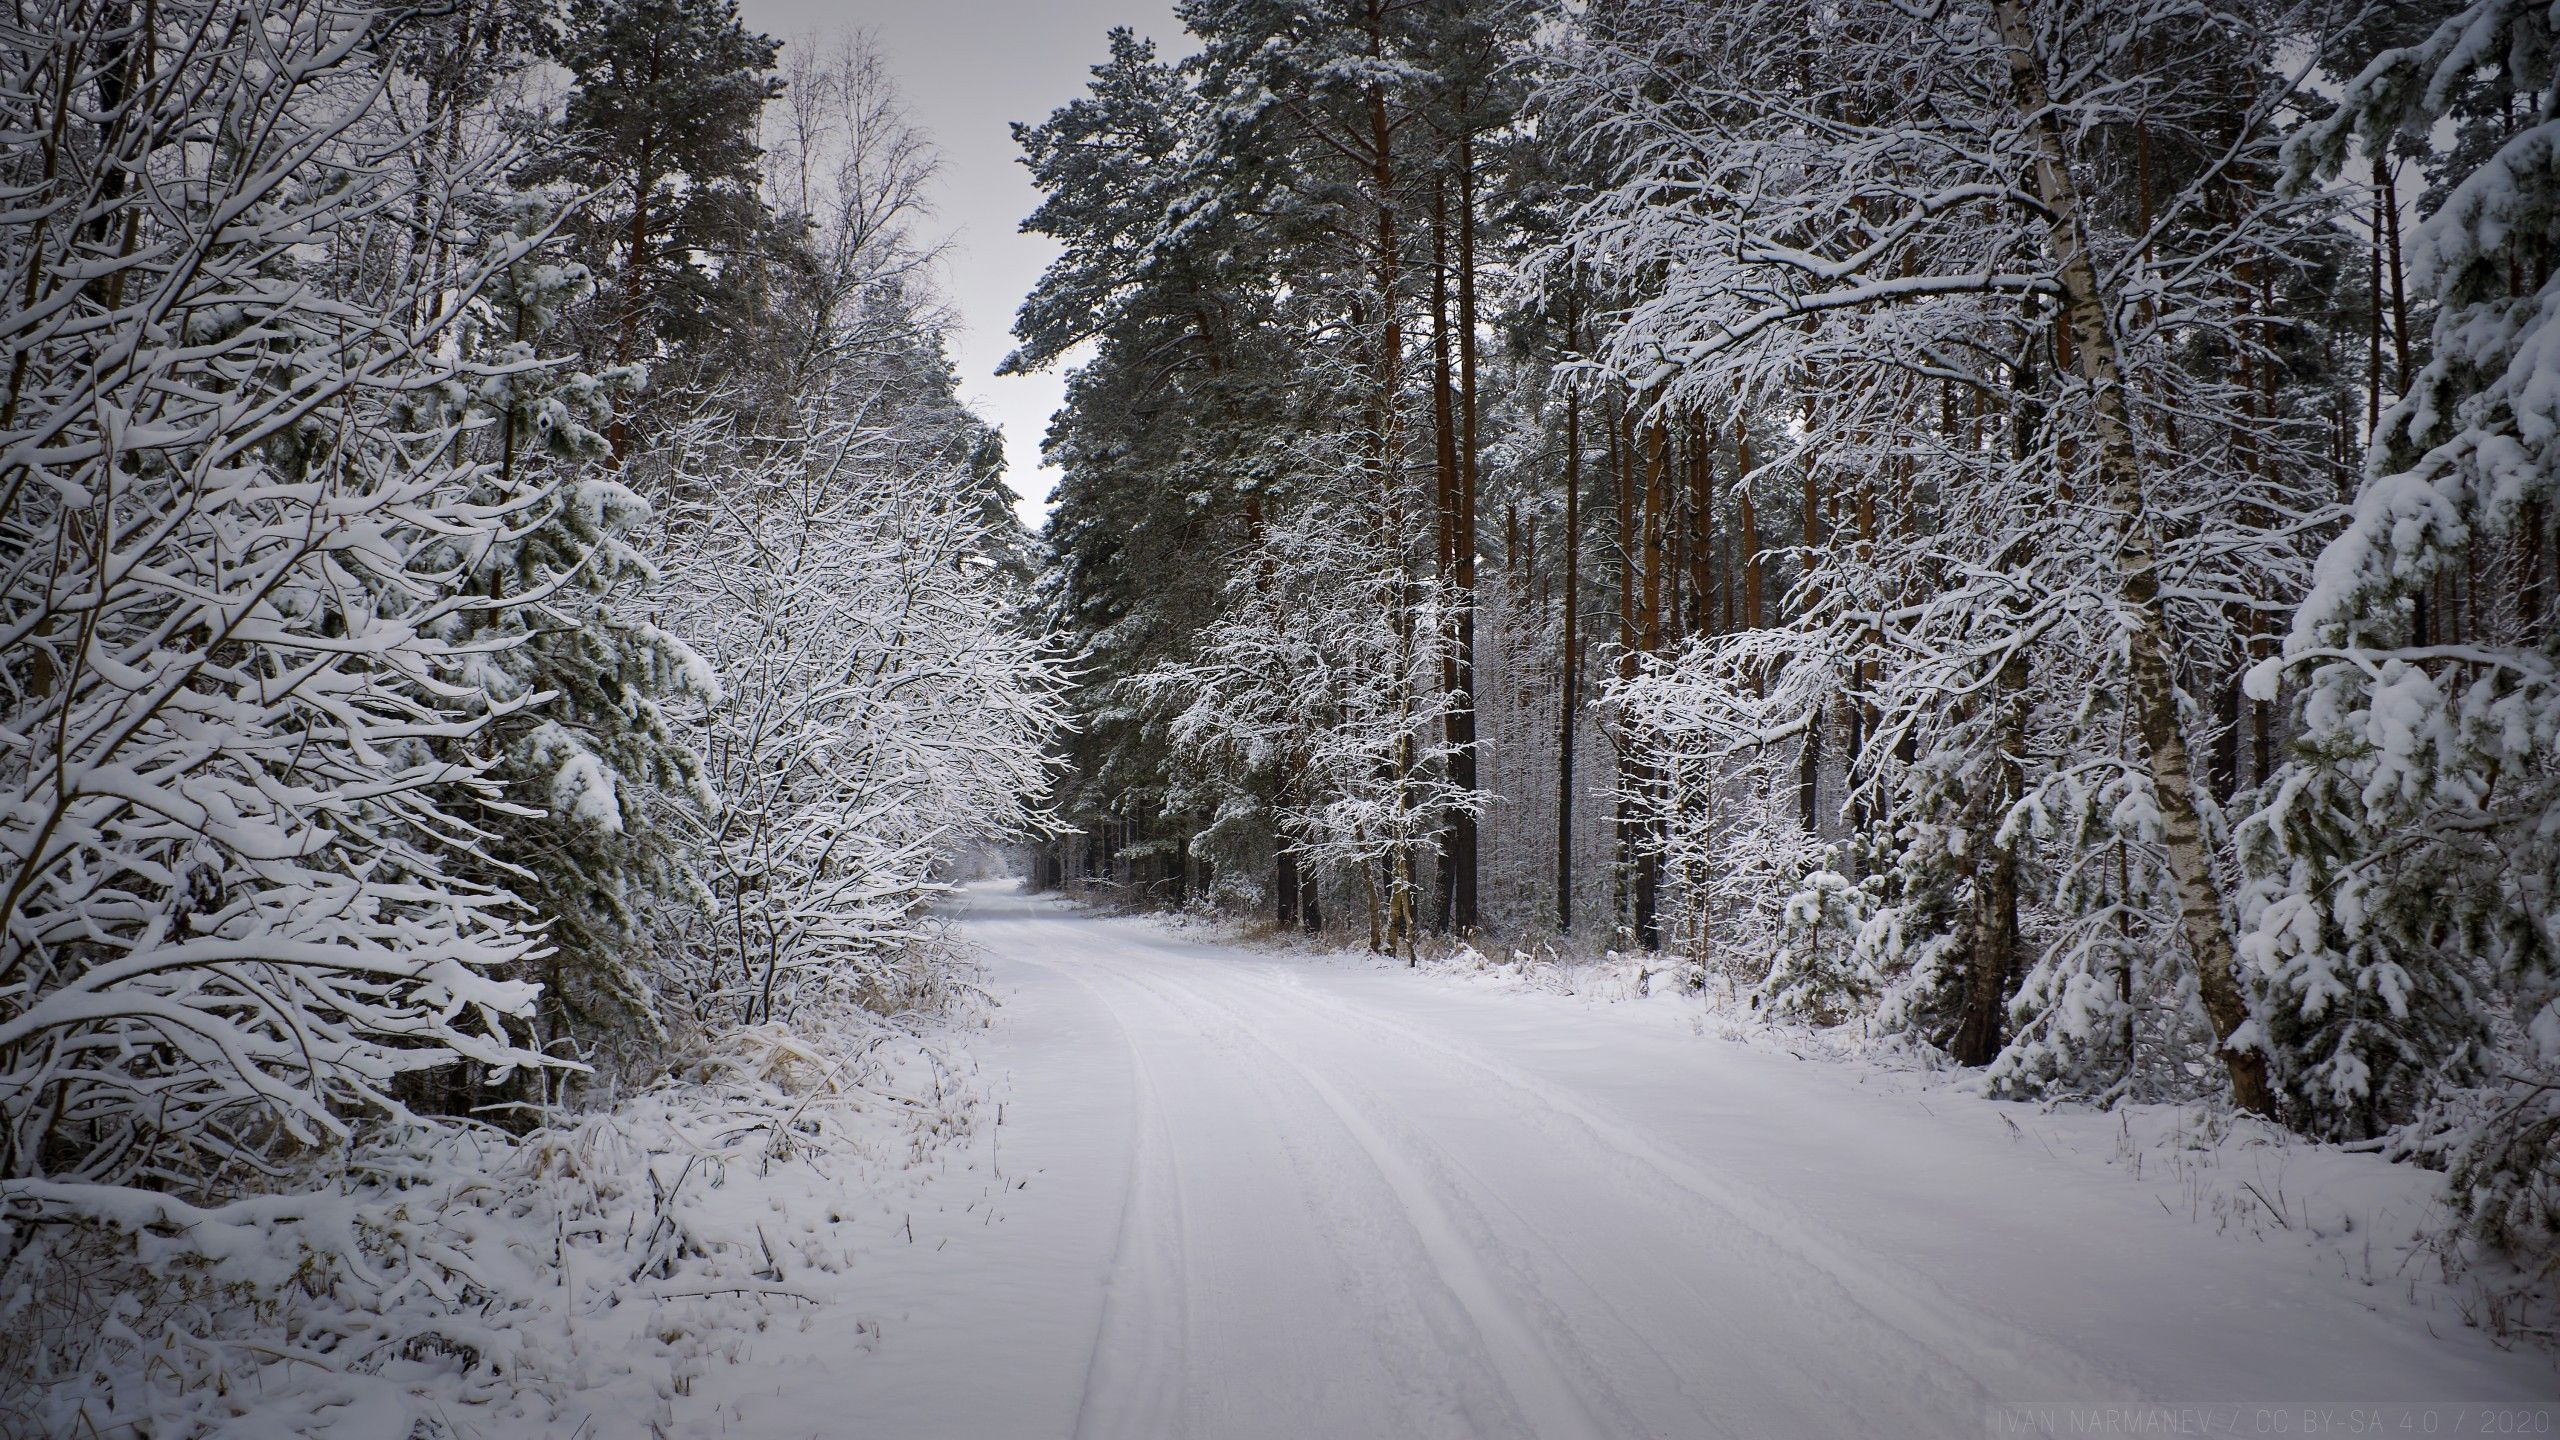 Wallpaper Snowy Forest Path At Winter Hd Forest Path Snowy Forest Winter Wallpaper Hd wallpaper winter nature forest path